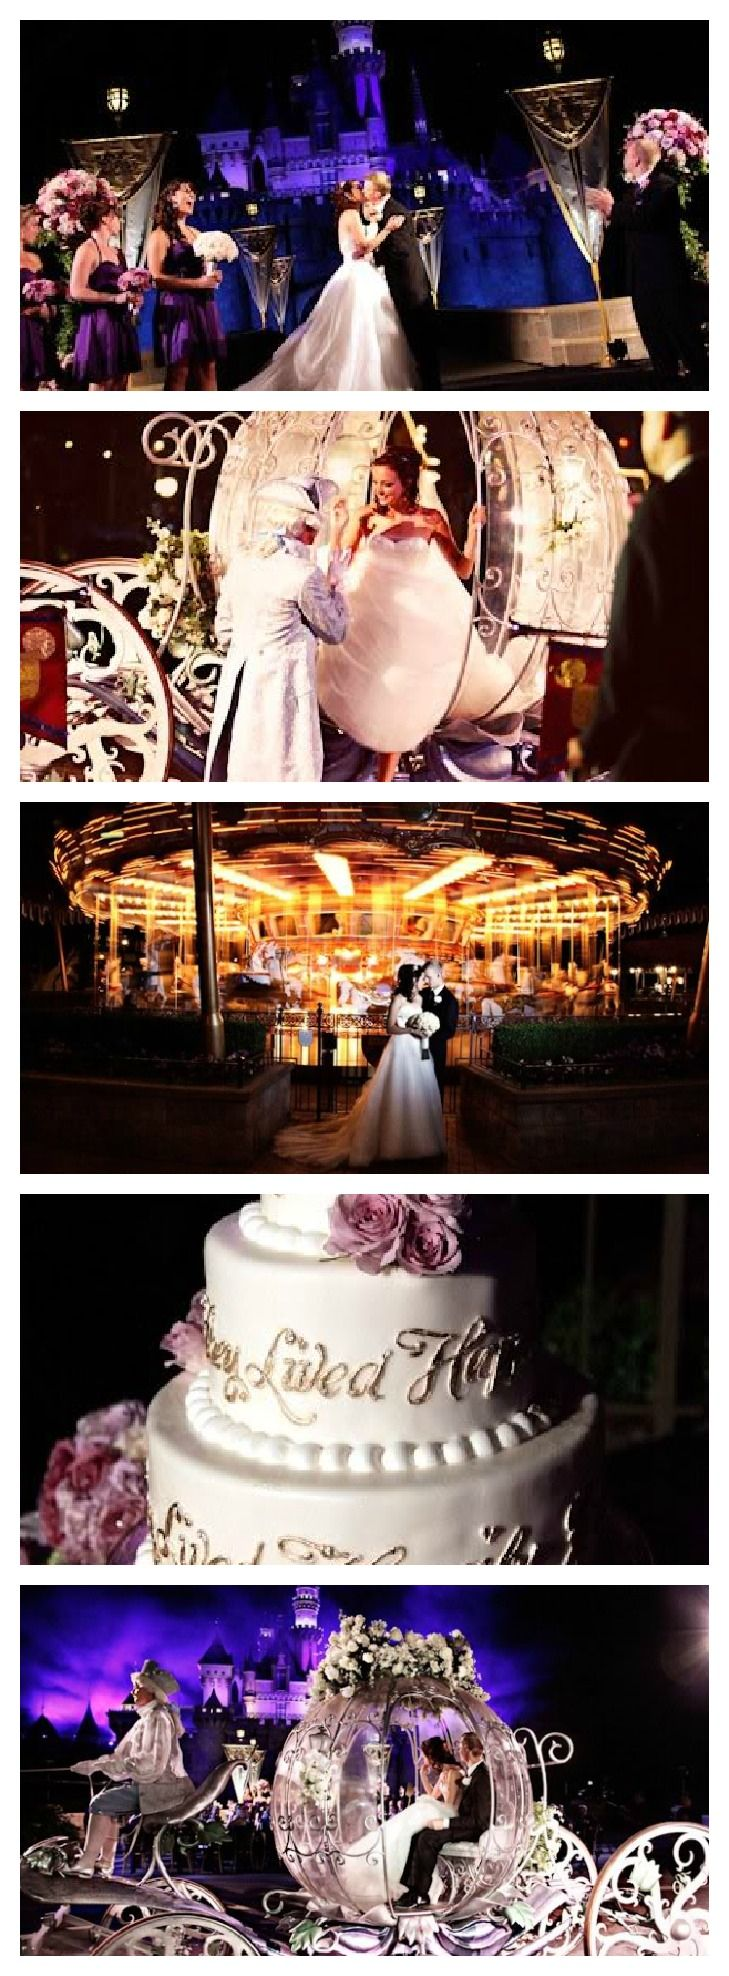 Incredible Disneyland wedding with the carriage, the castle, and fireworks included. One of my favorite Disney weddings!